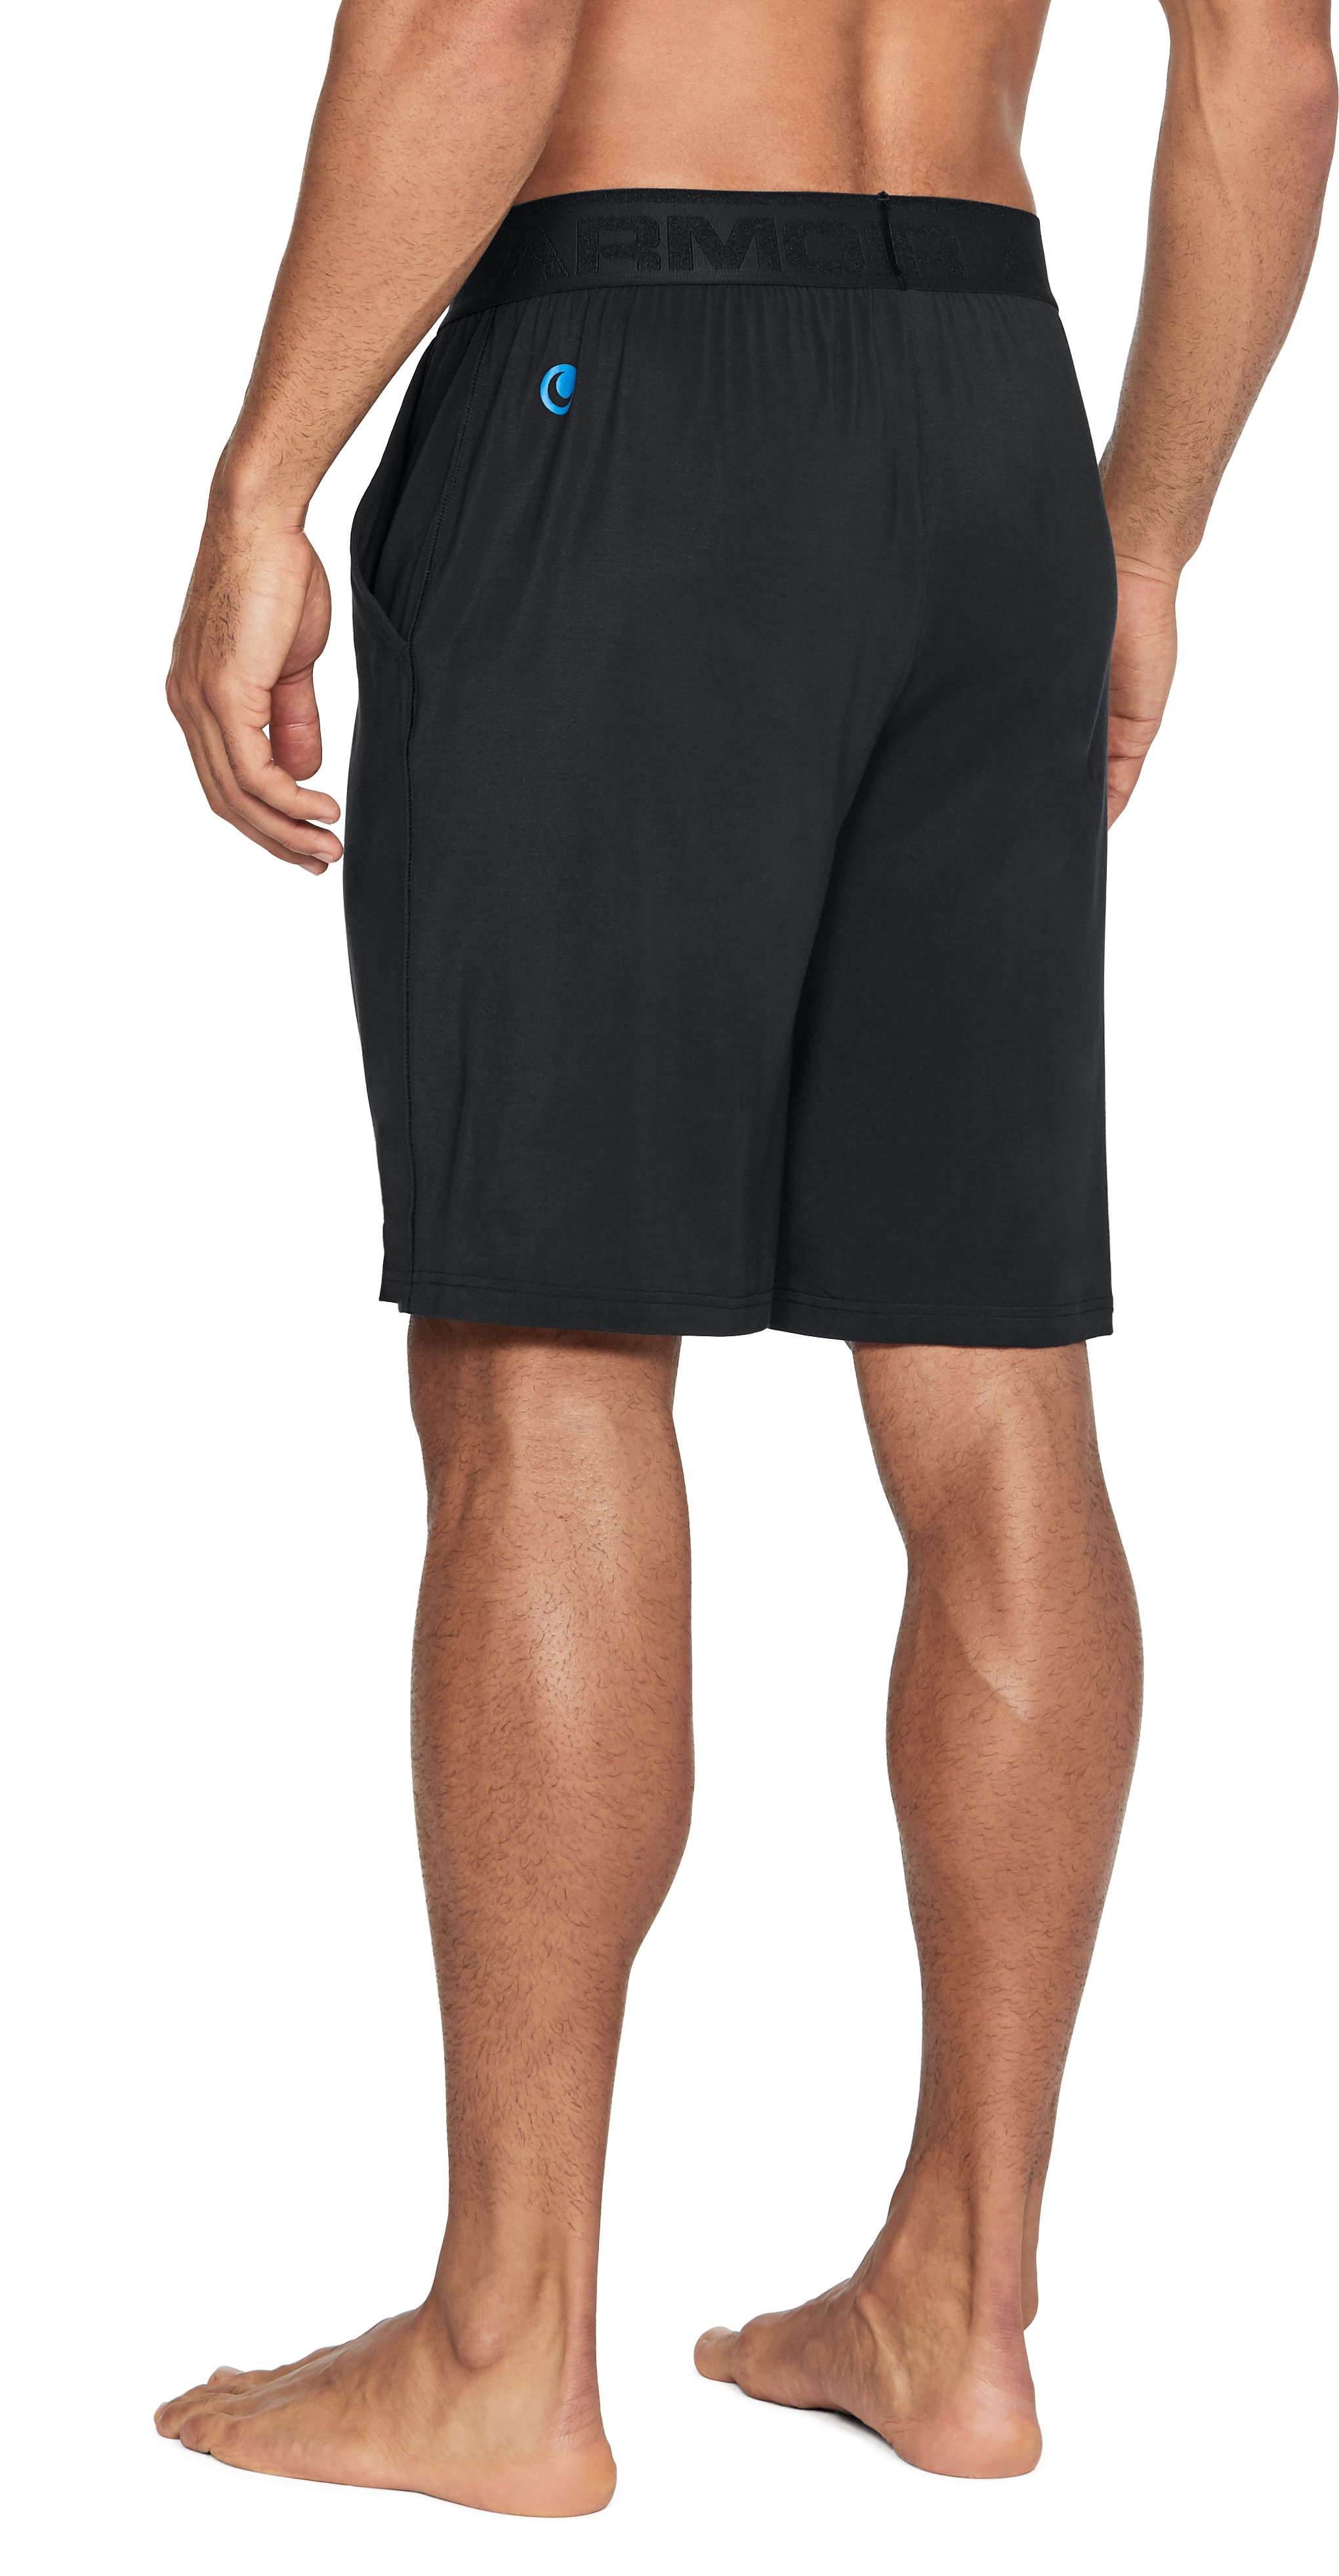 Men's Athlete Recovery Ultra Comfort Sleepwear Shorts, Black , undefined